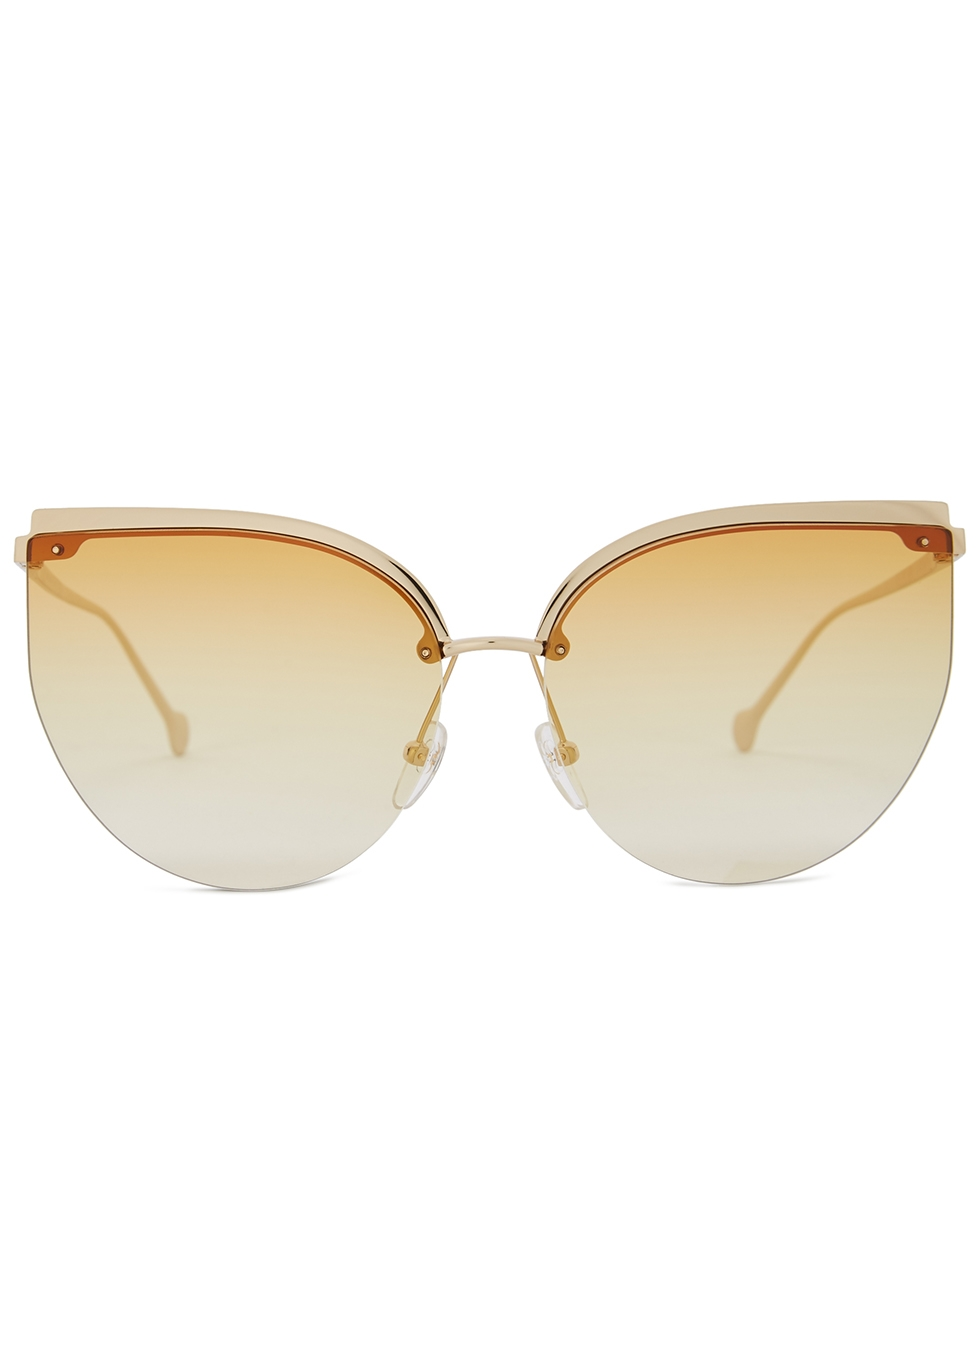 Gold-tone cat-eye sunglasses - Salvatore Ferragamo